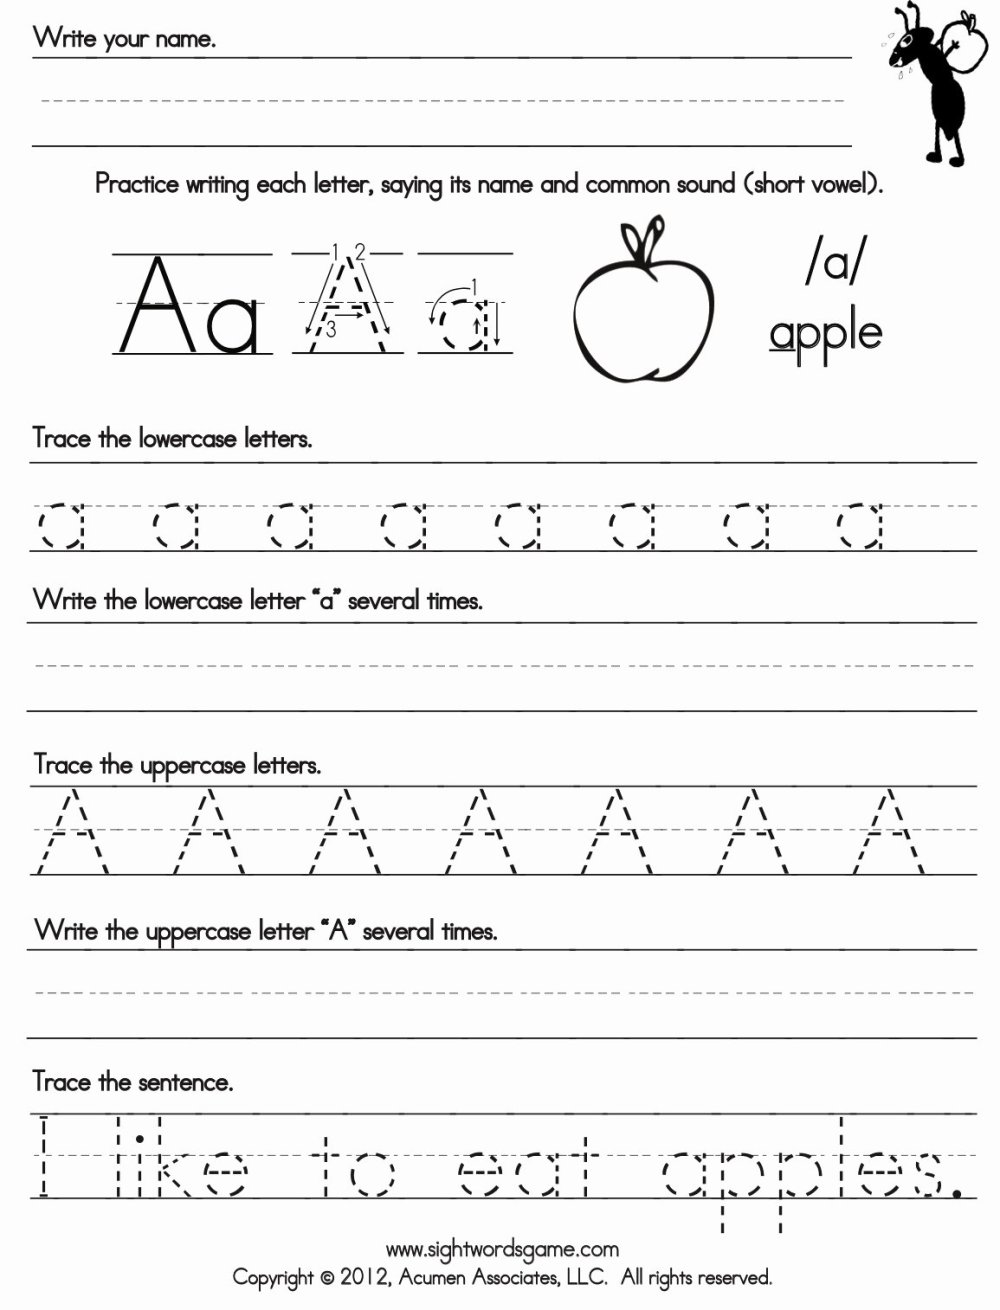 medium resolution of Writing Abc Worksheets for Preschoolers Awesome Tracing Letters Preschool  Worksheets Letter Alphabet Writing – Printable Worksheets for Kids